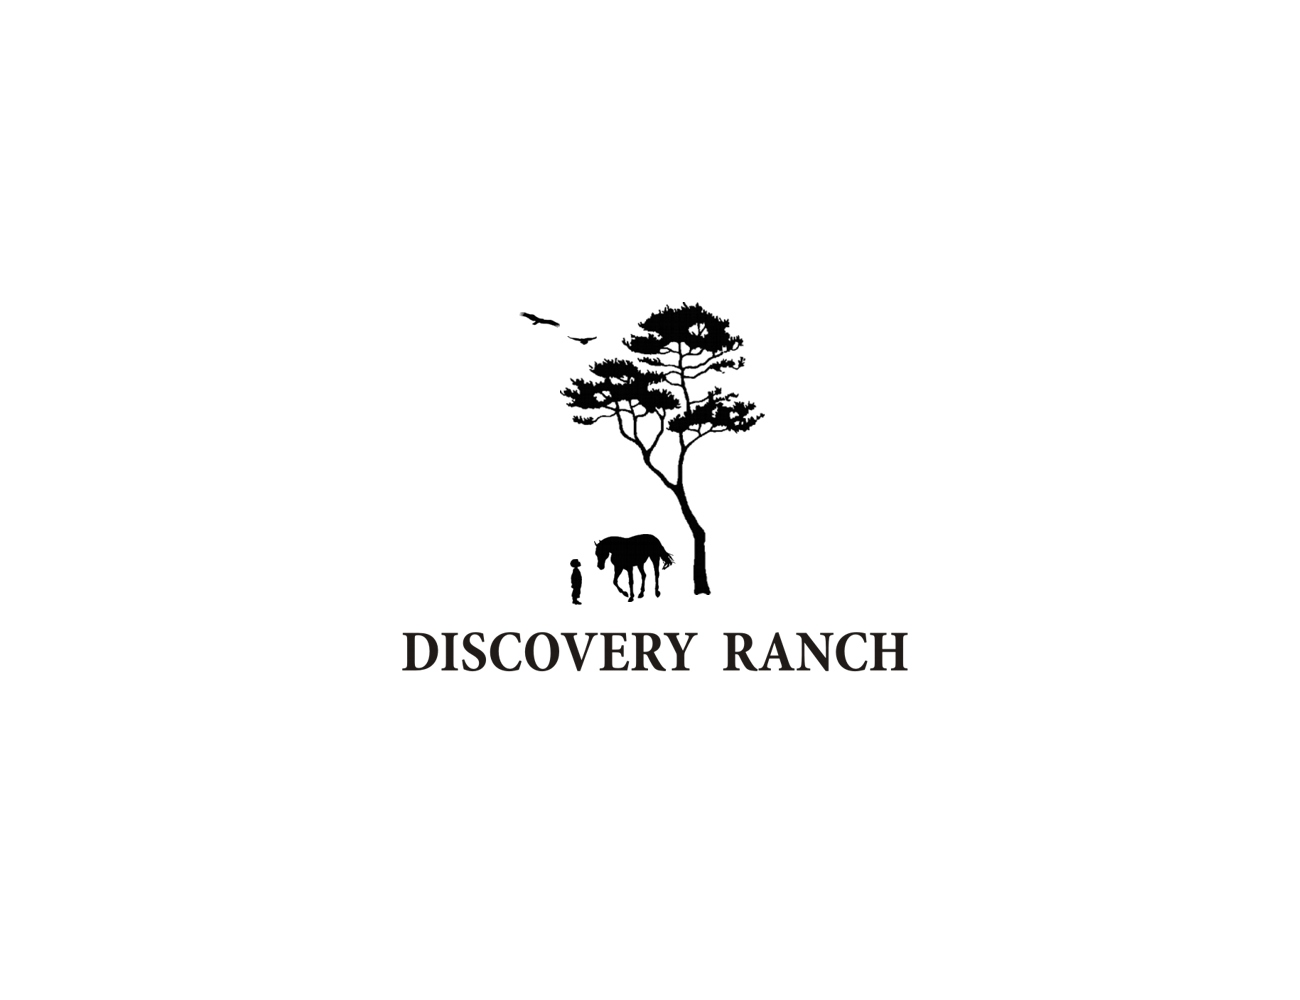 Logo Design by Q_Division_Designs - Entry No. 49 in the Logo Design Contest Creative Logo Design for Discovery Ranch.